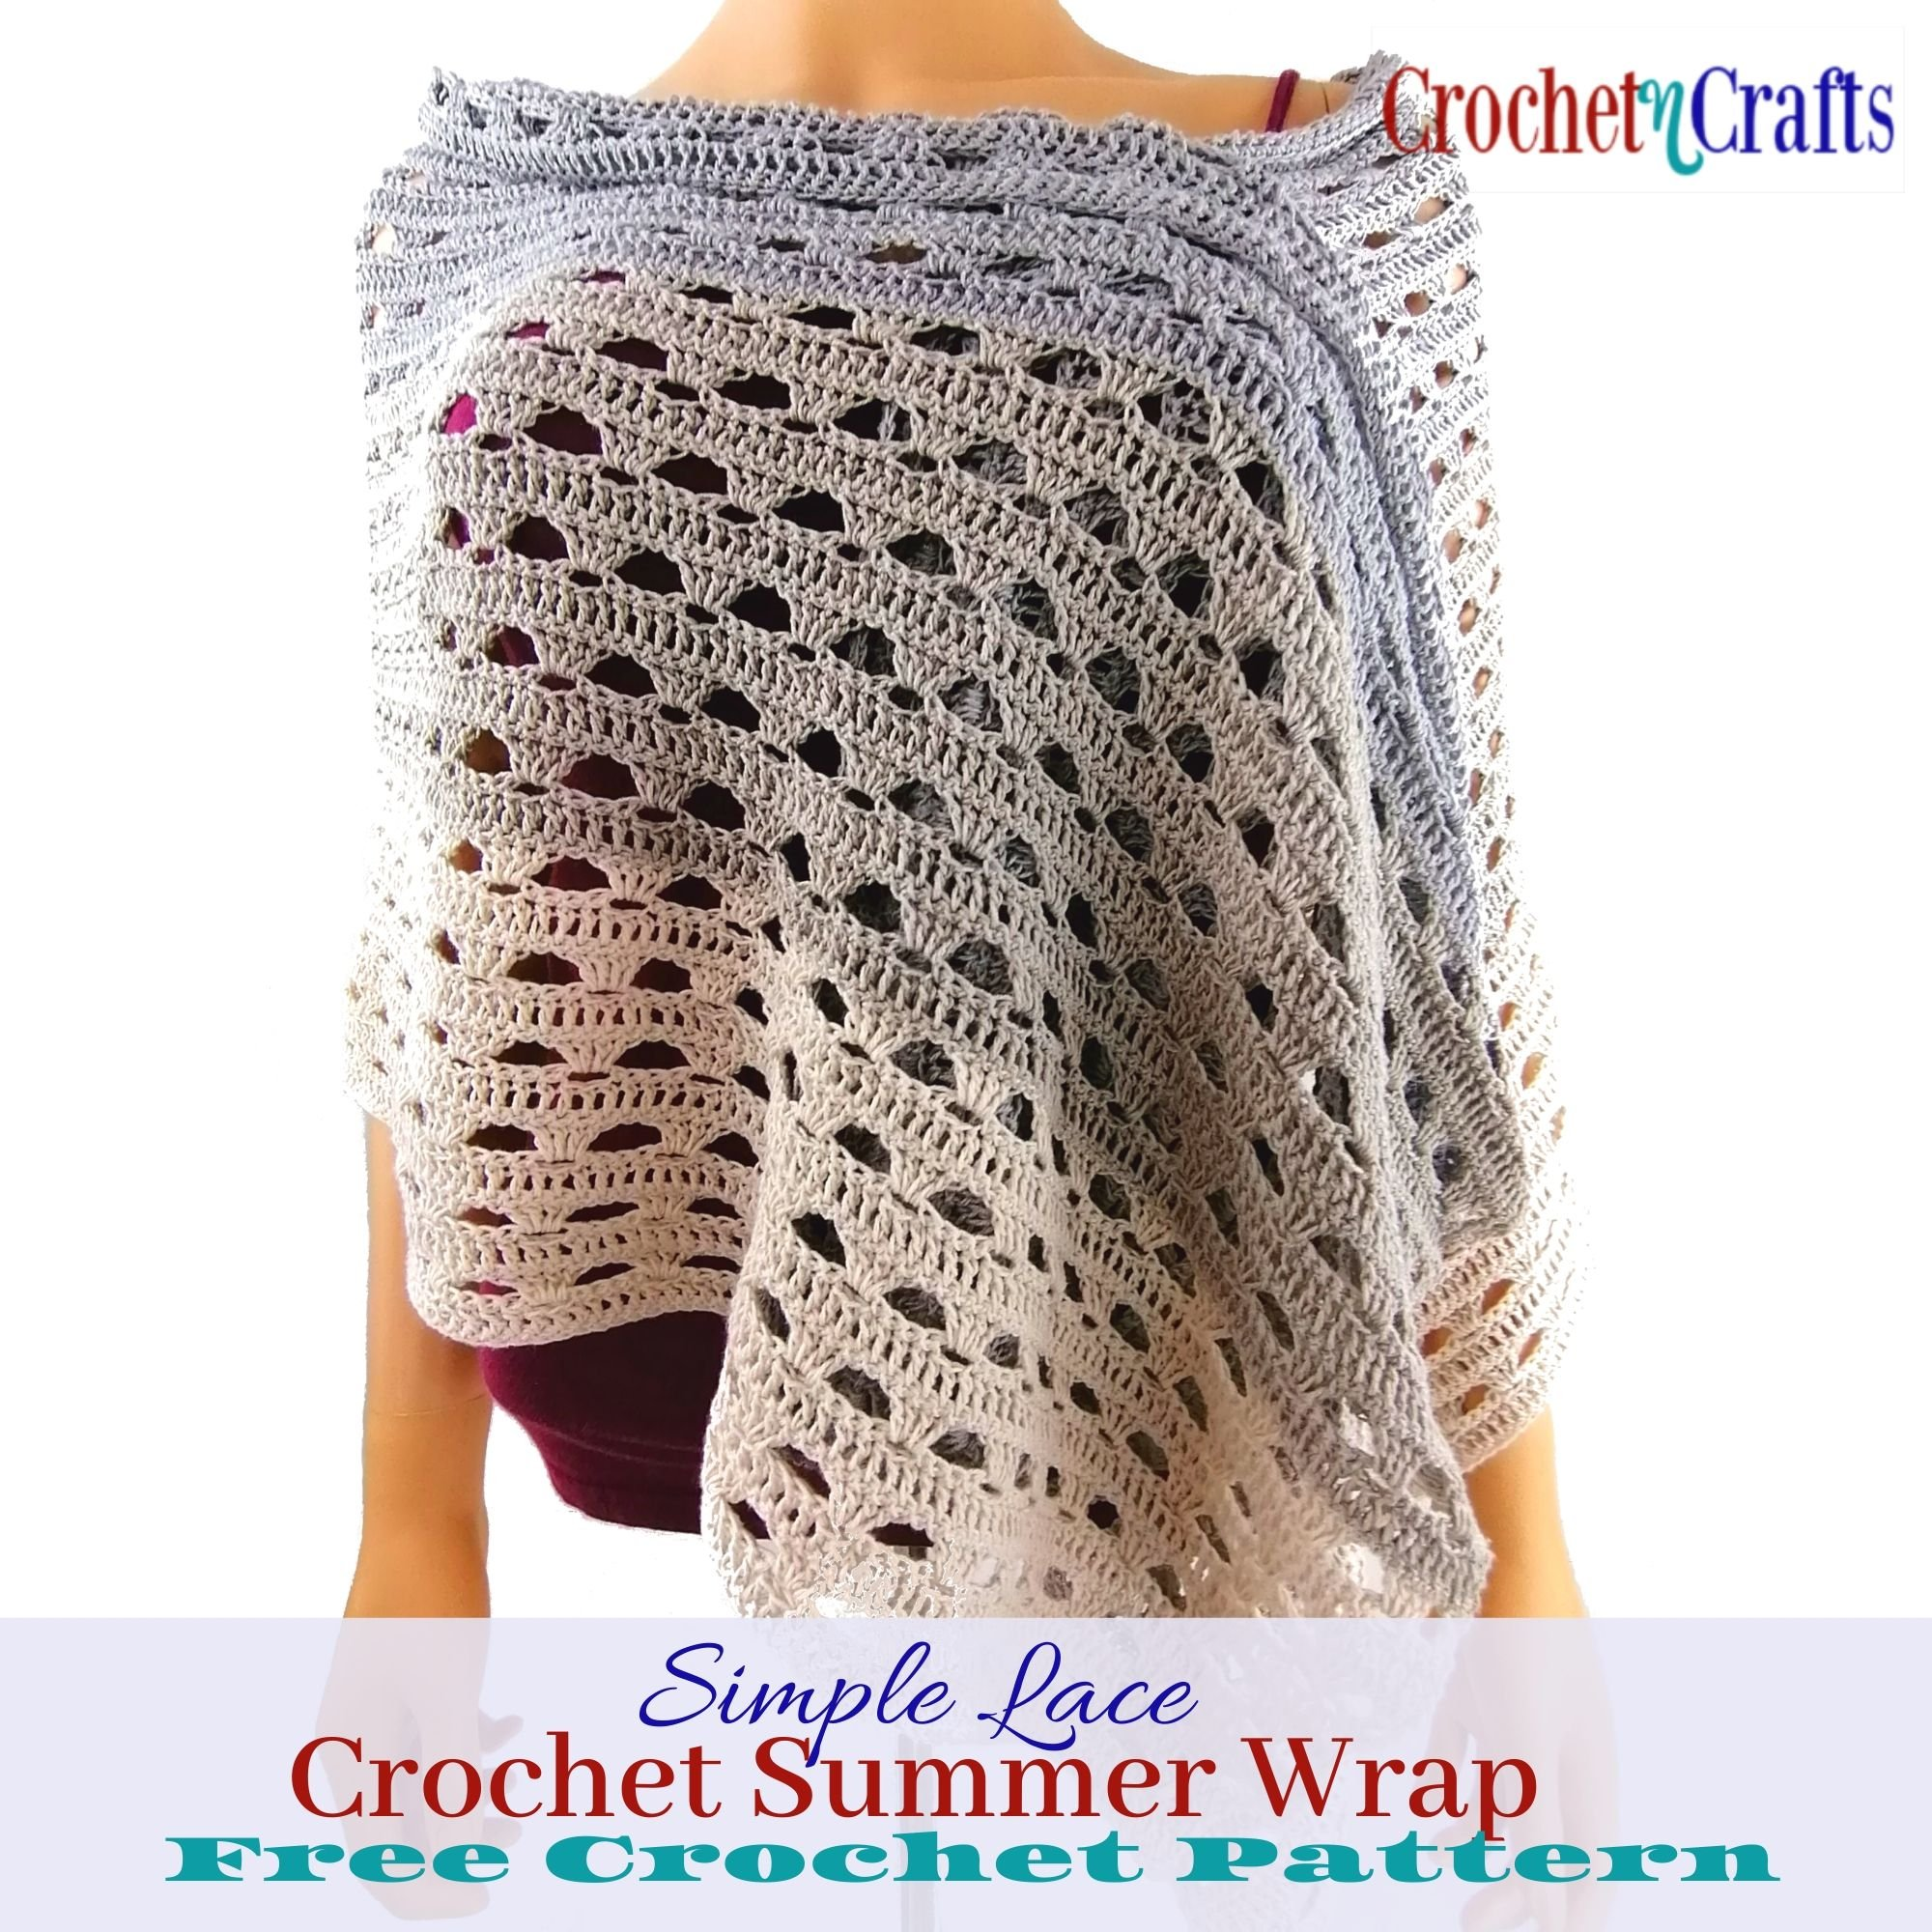 Simple Lace Crochet Summer Wrap worn at a slight angle.